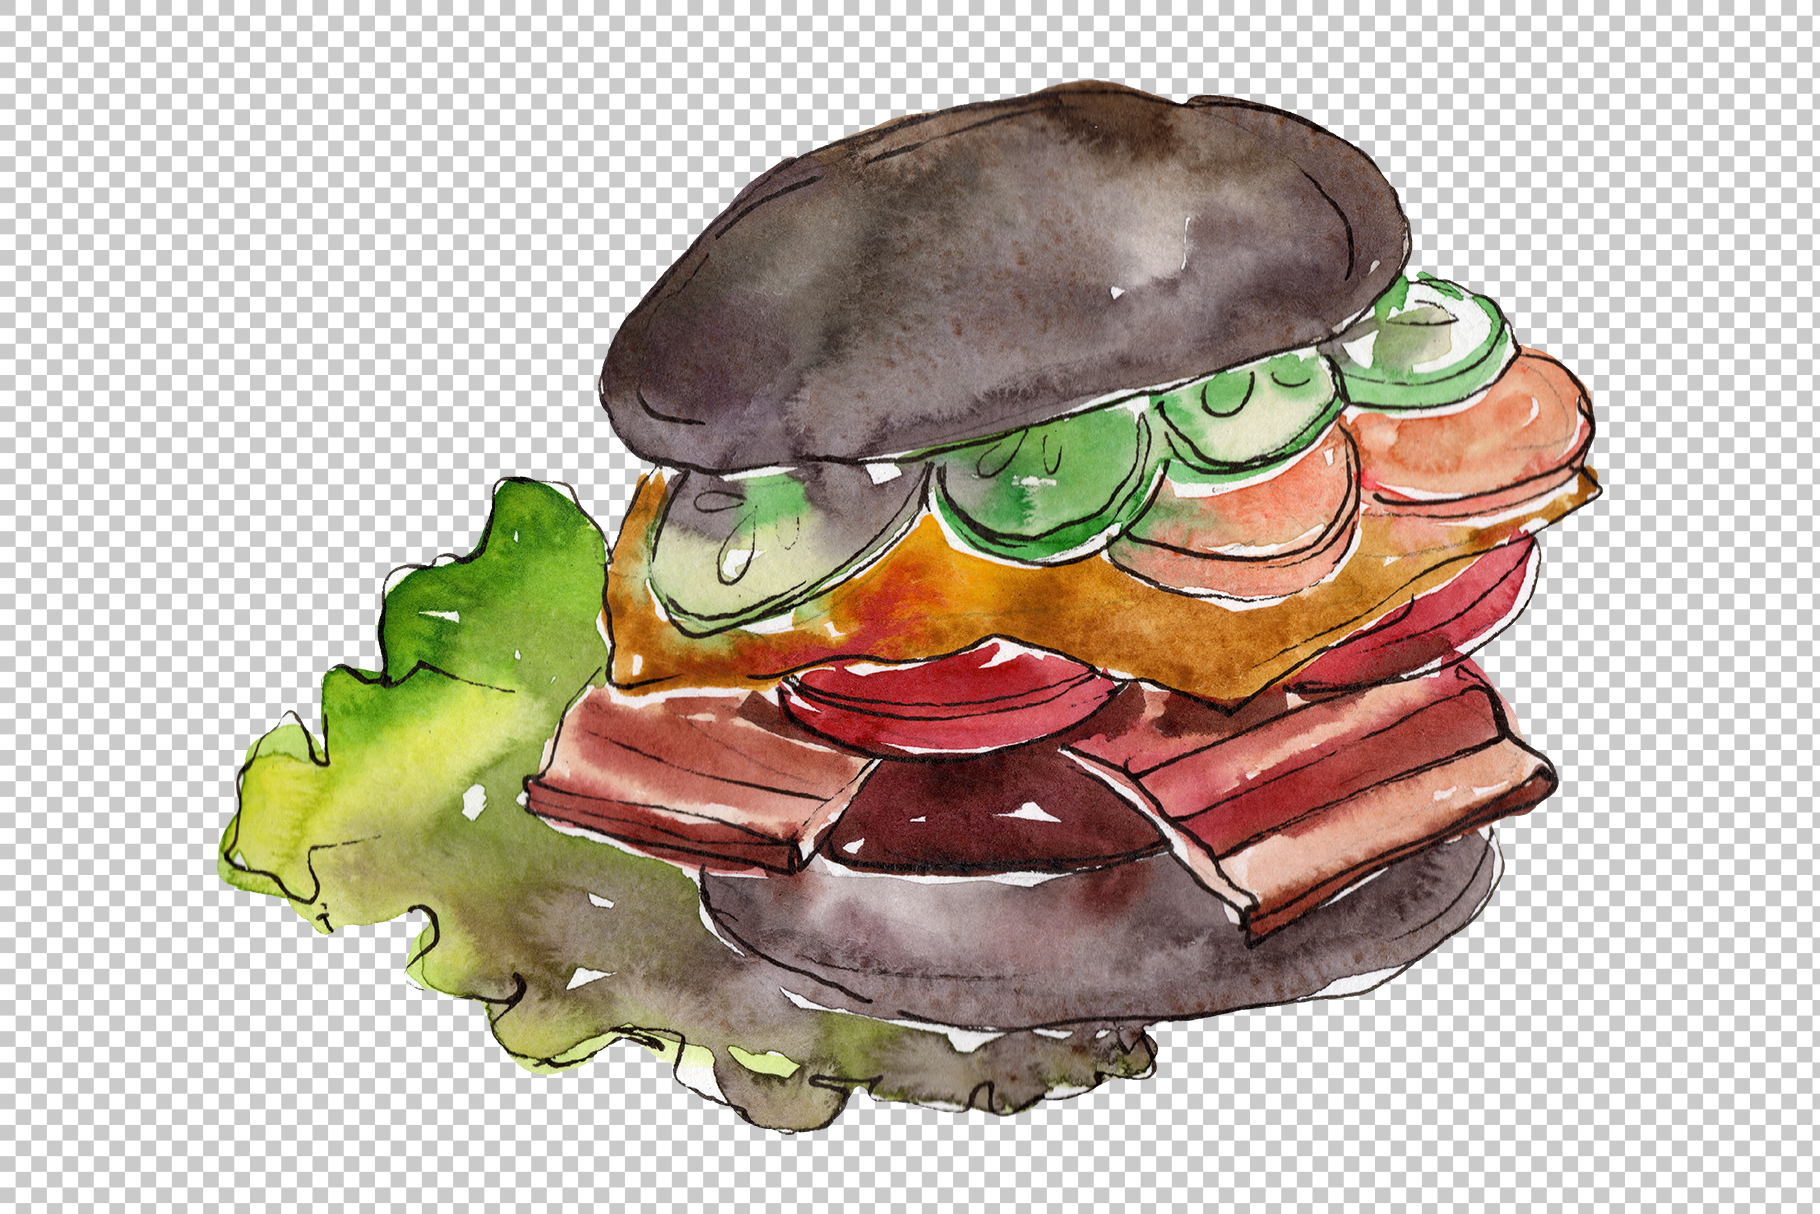 Hamburger black crunchy Watercolor png example image 2